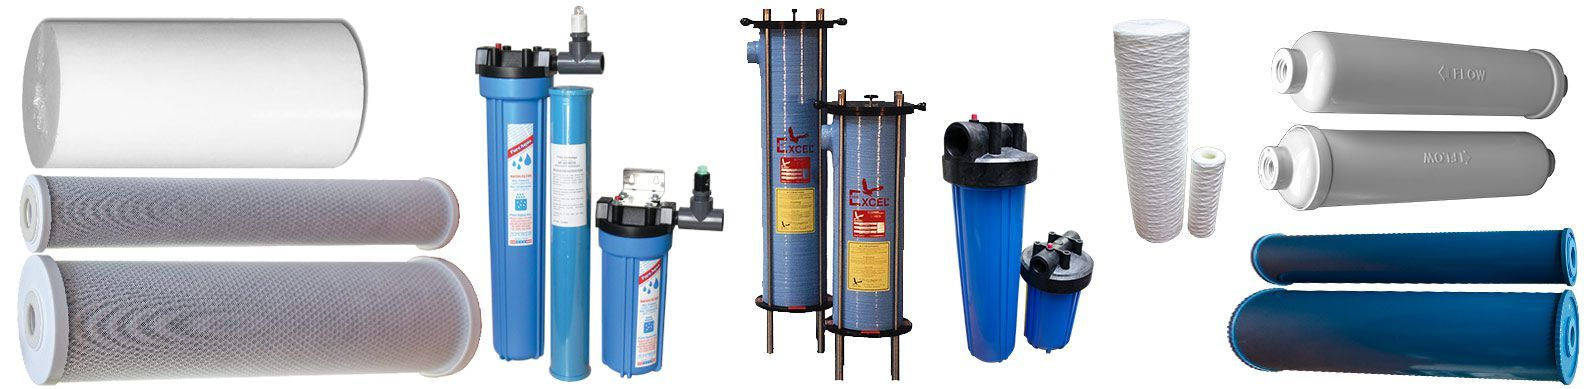 cartridge filters parts and components